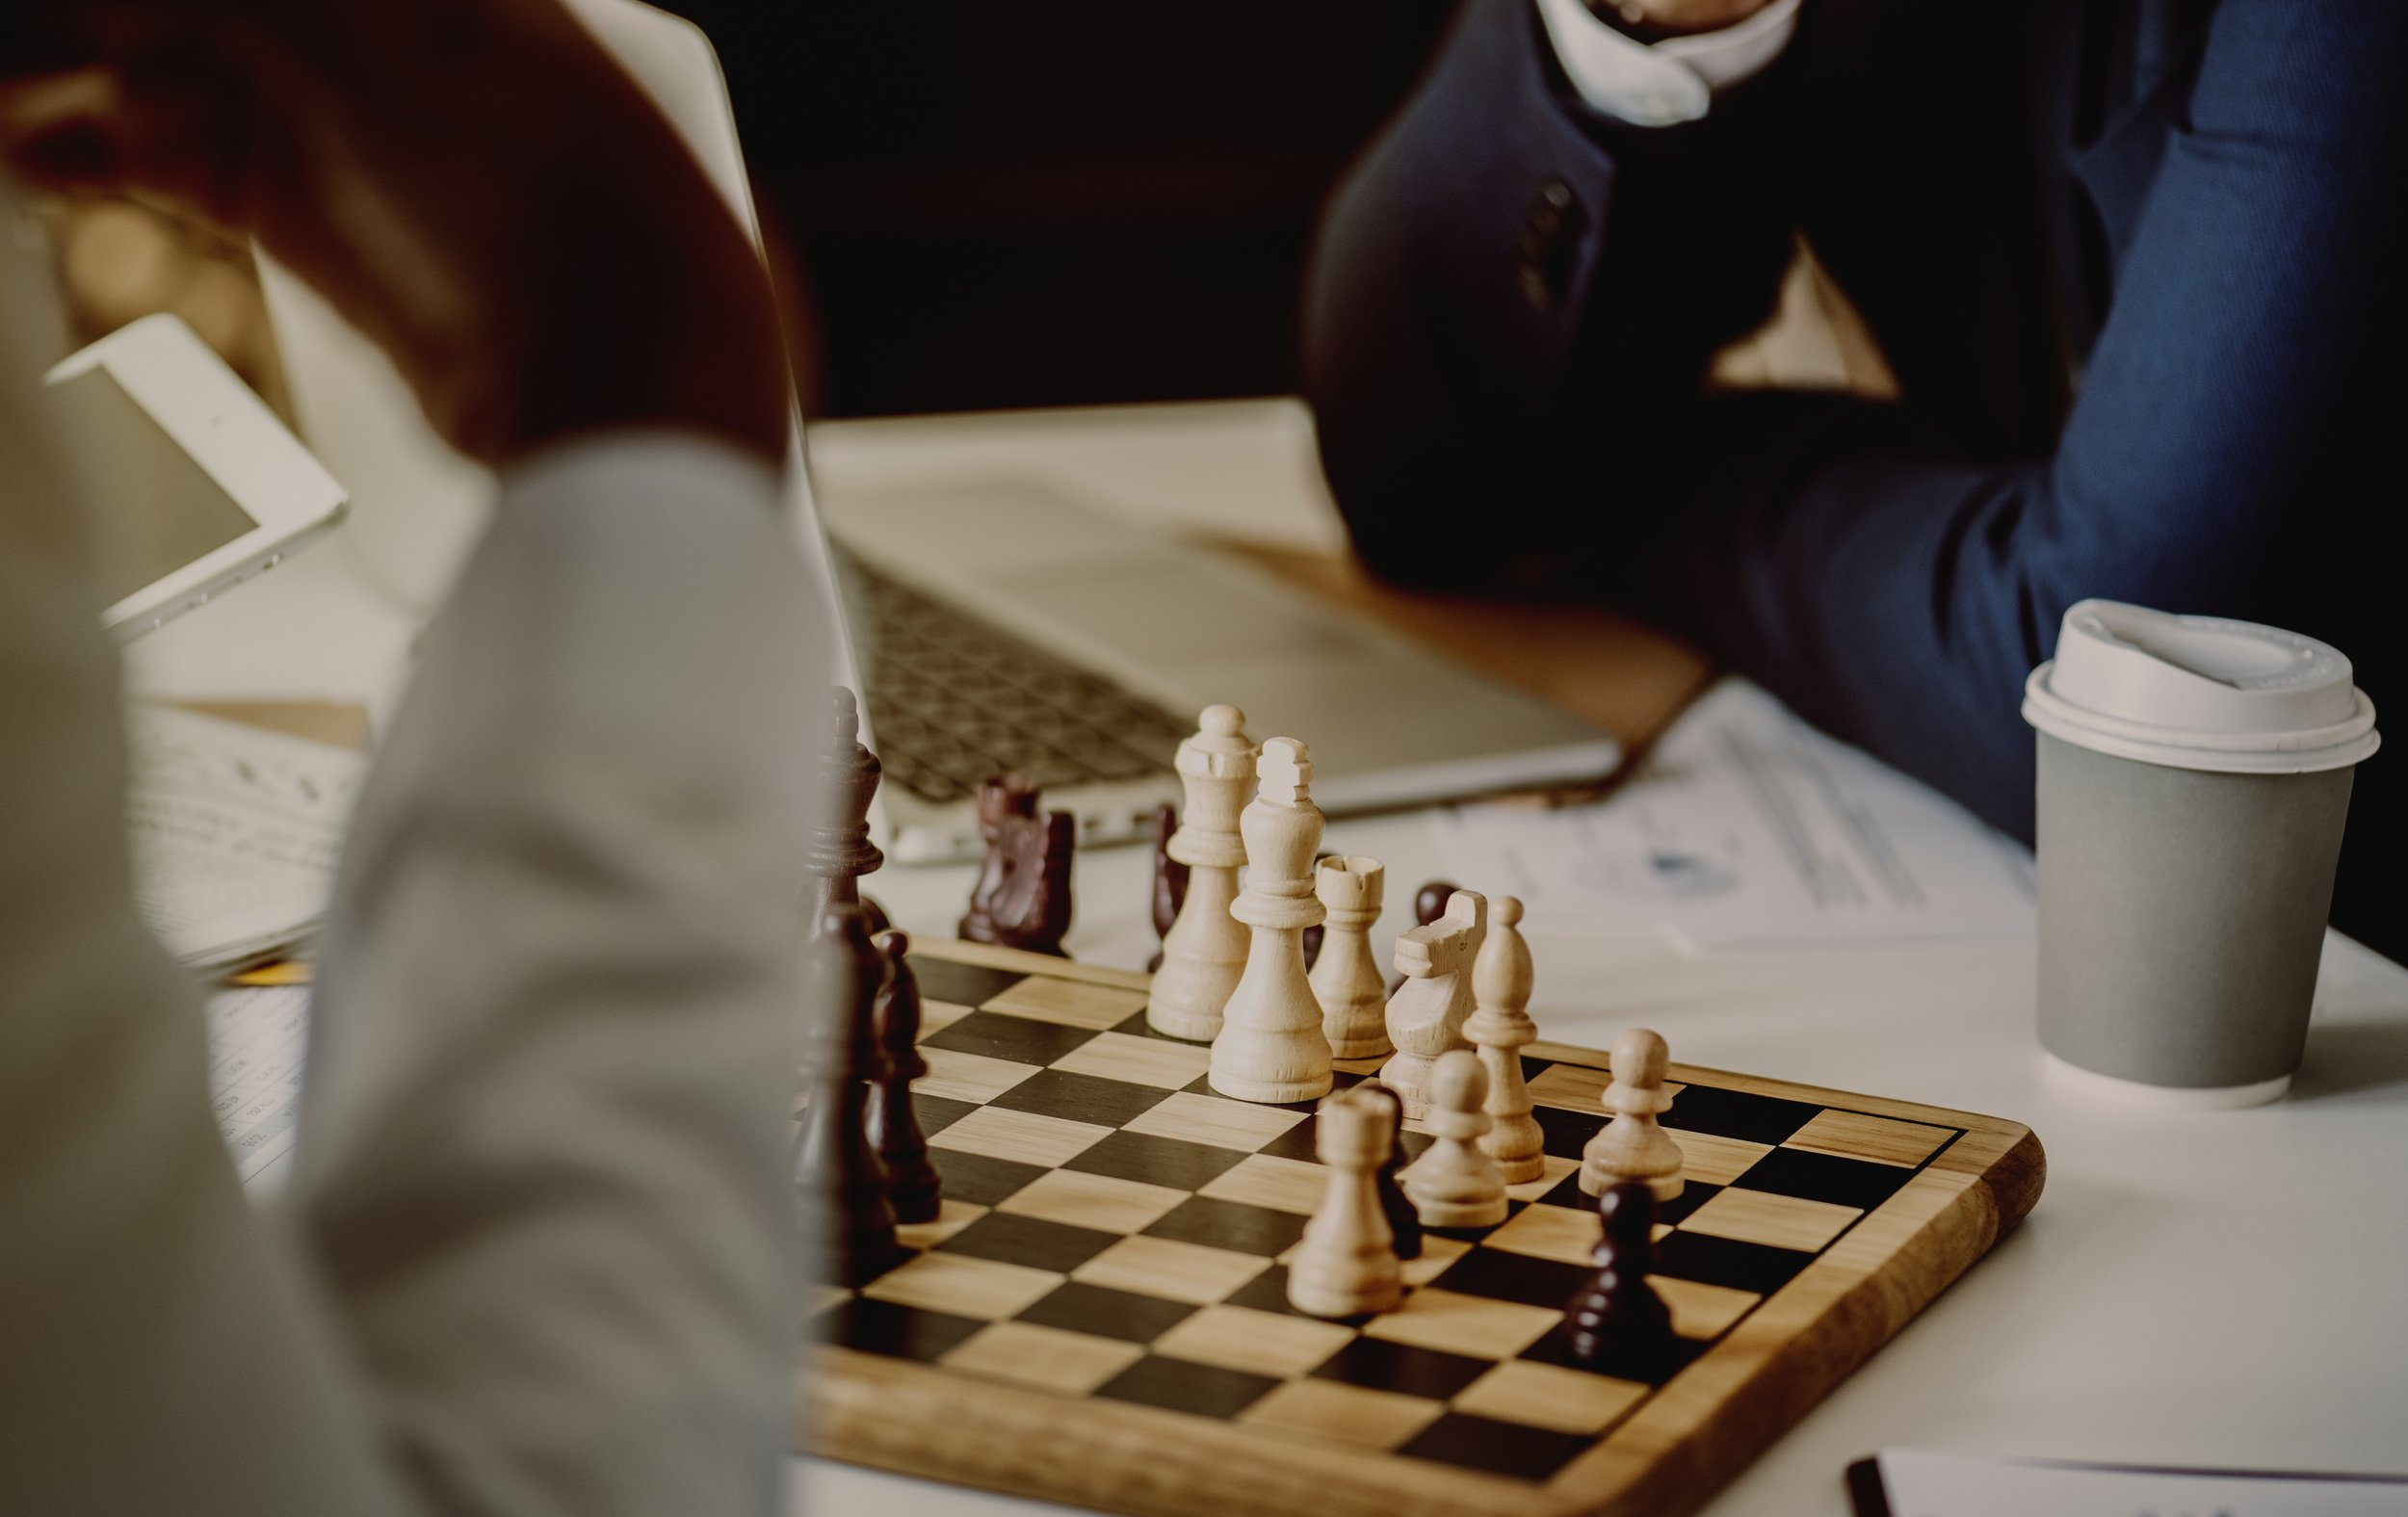 AlphaZero, Google's AI, learned the rules of chess and beat the world's champion in a matter of hours.